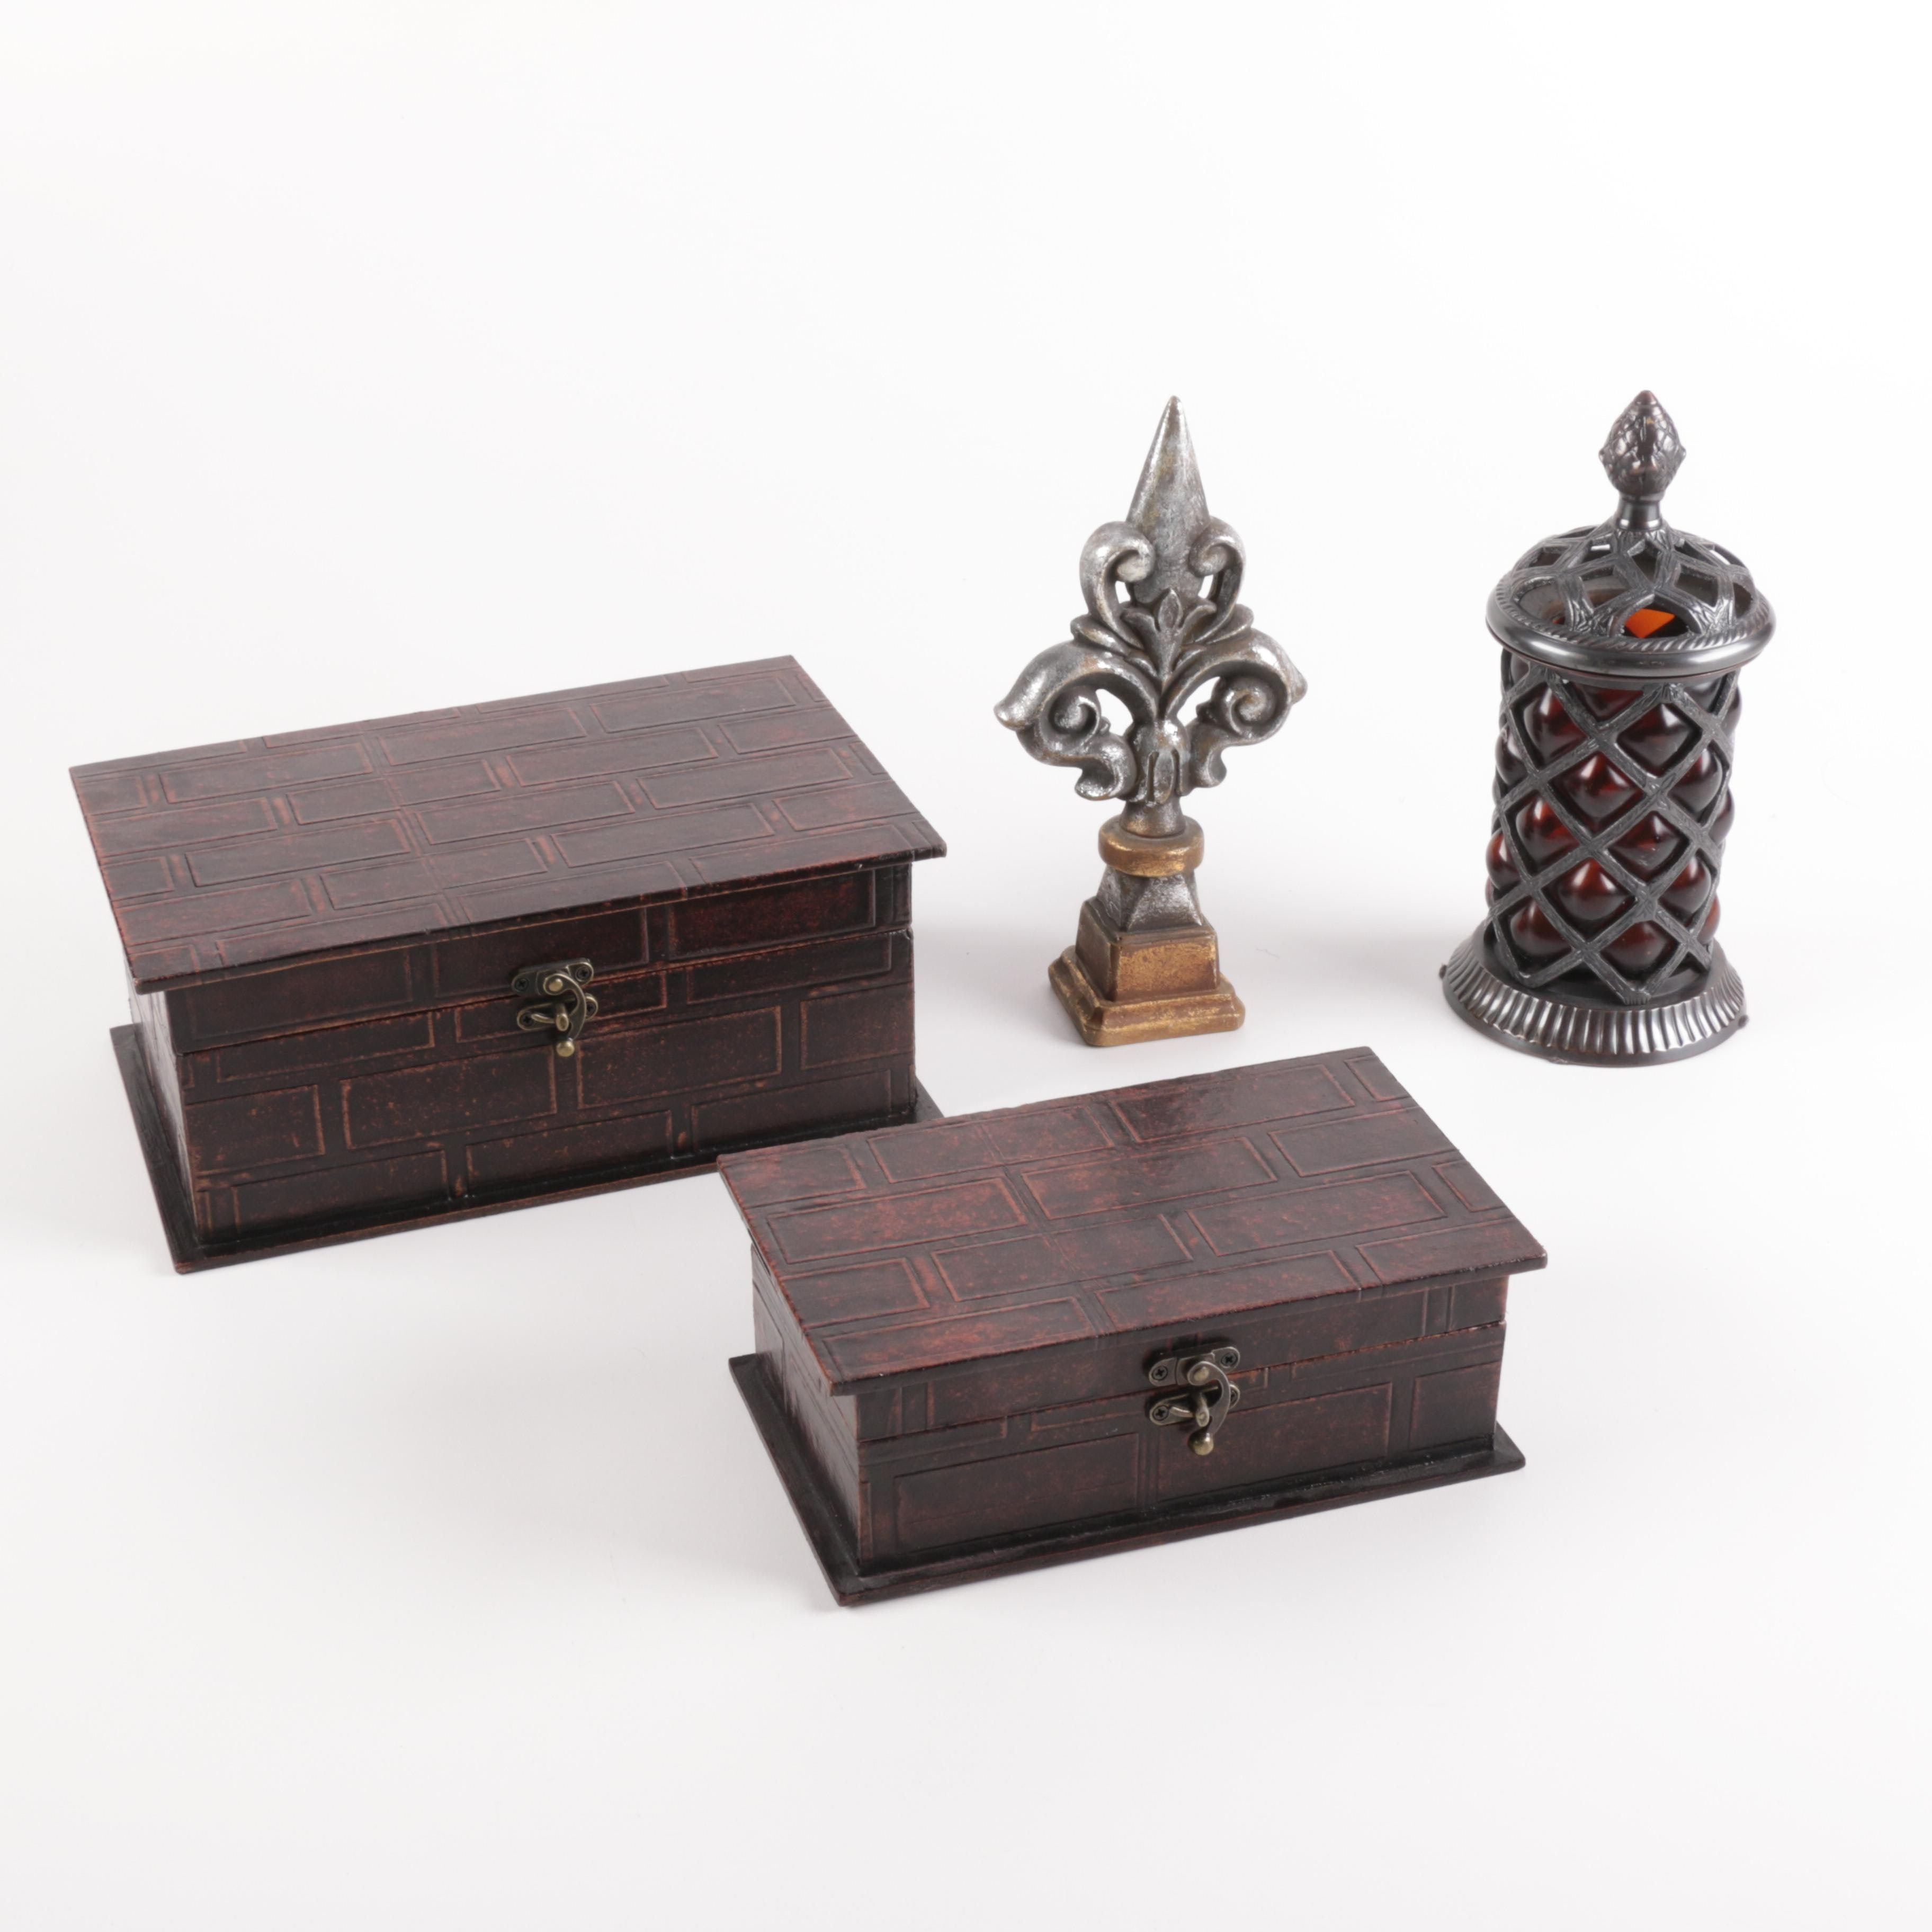 Decorative Boxes, Red Glass and Metal Jar, and Finial